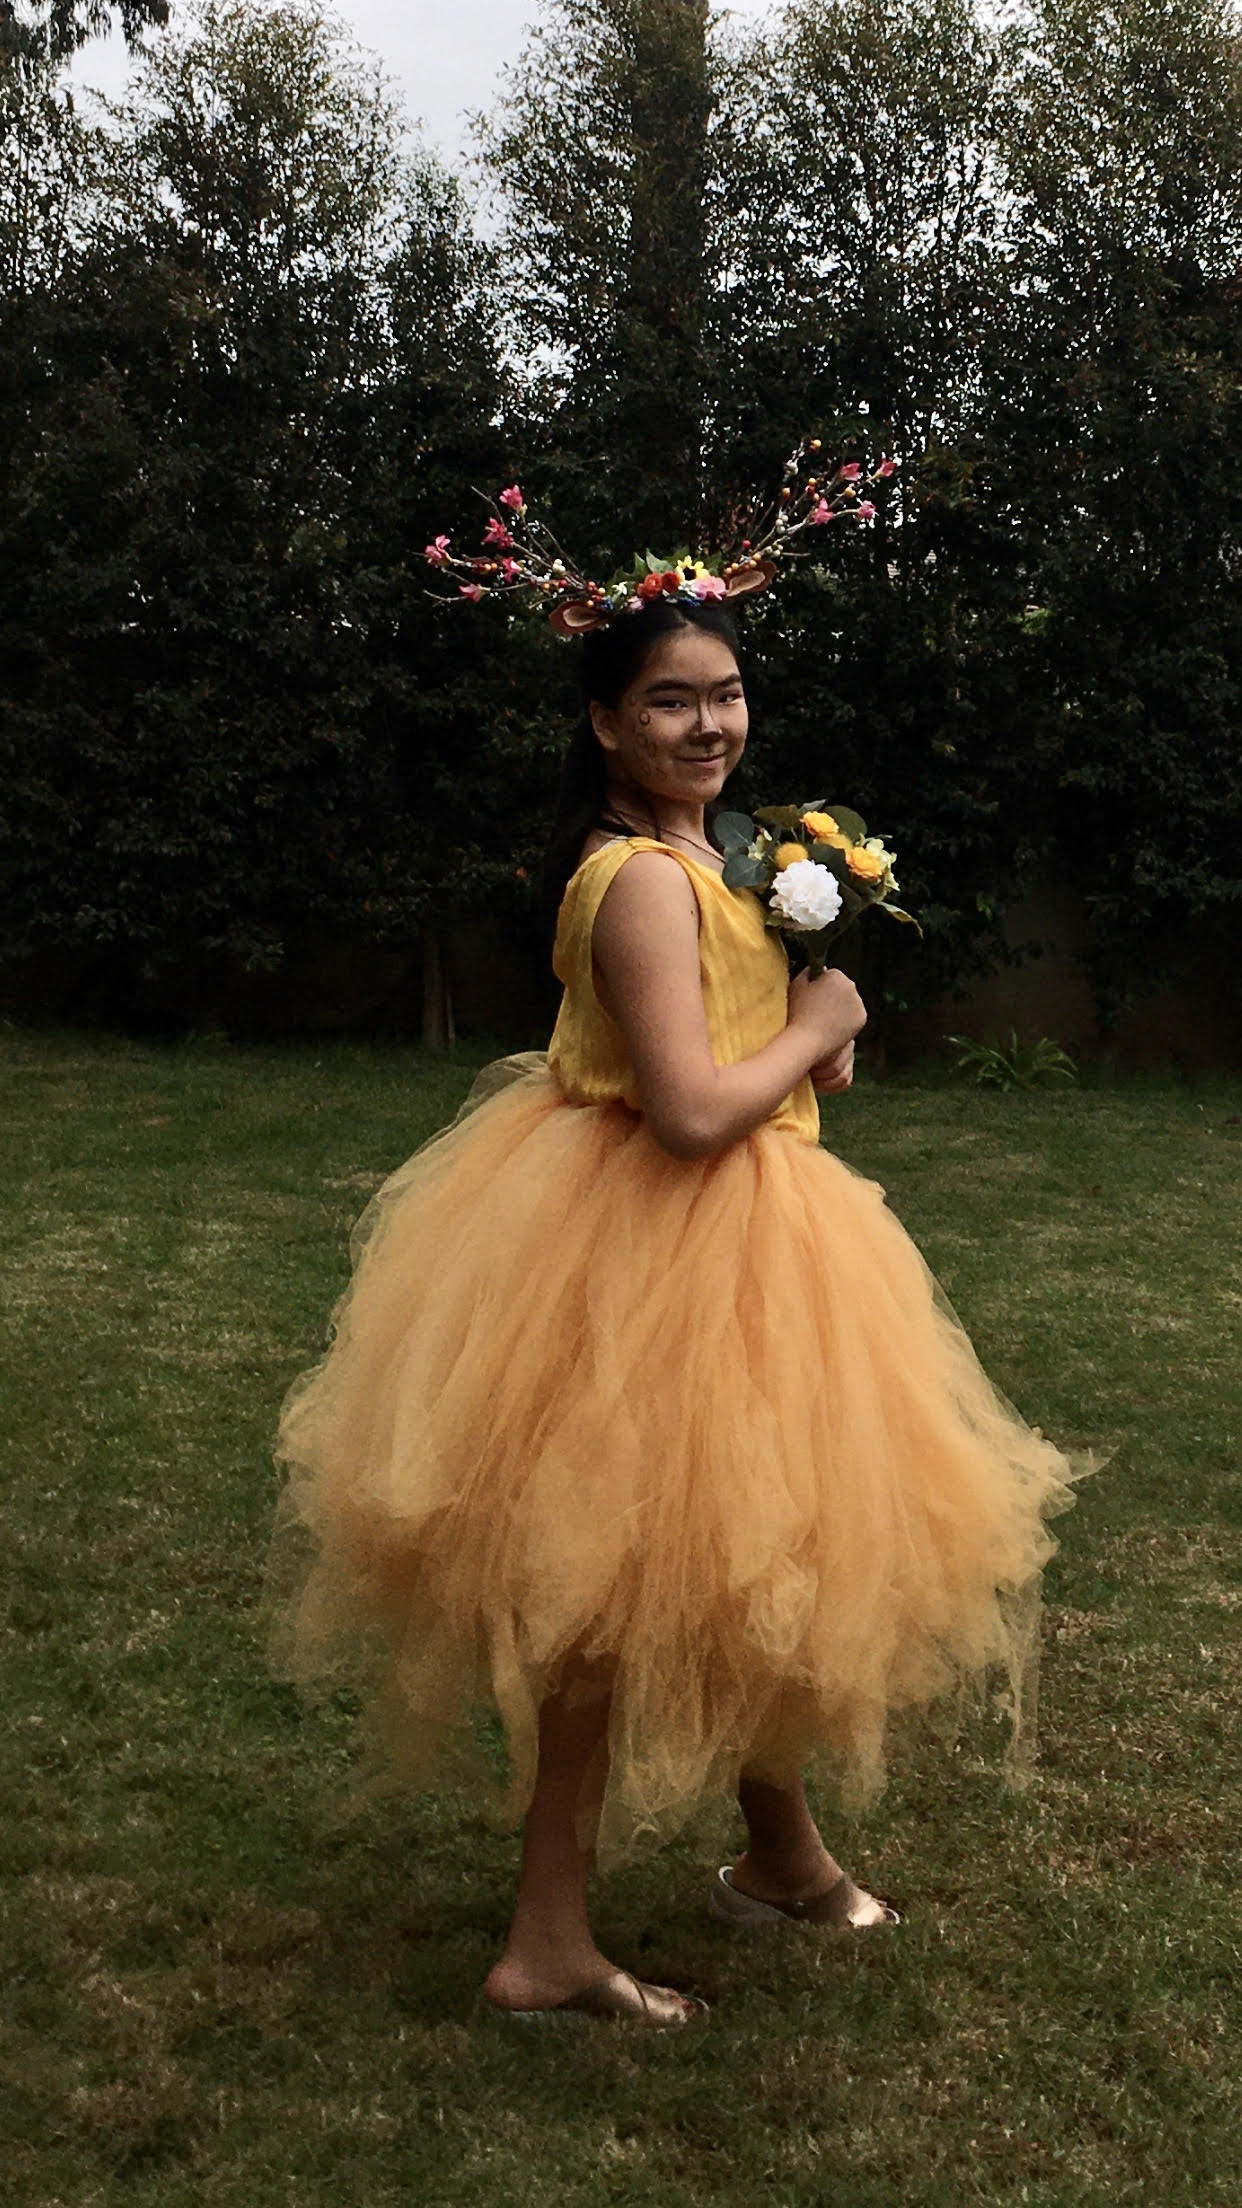 Beautiful Bambi Deer Costume Made by a 12-Year-Old Girl